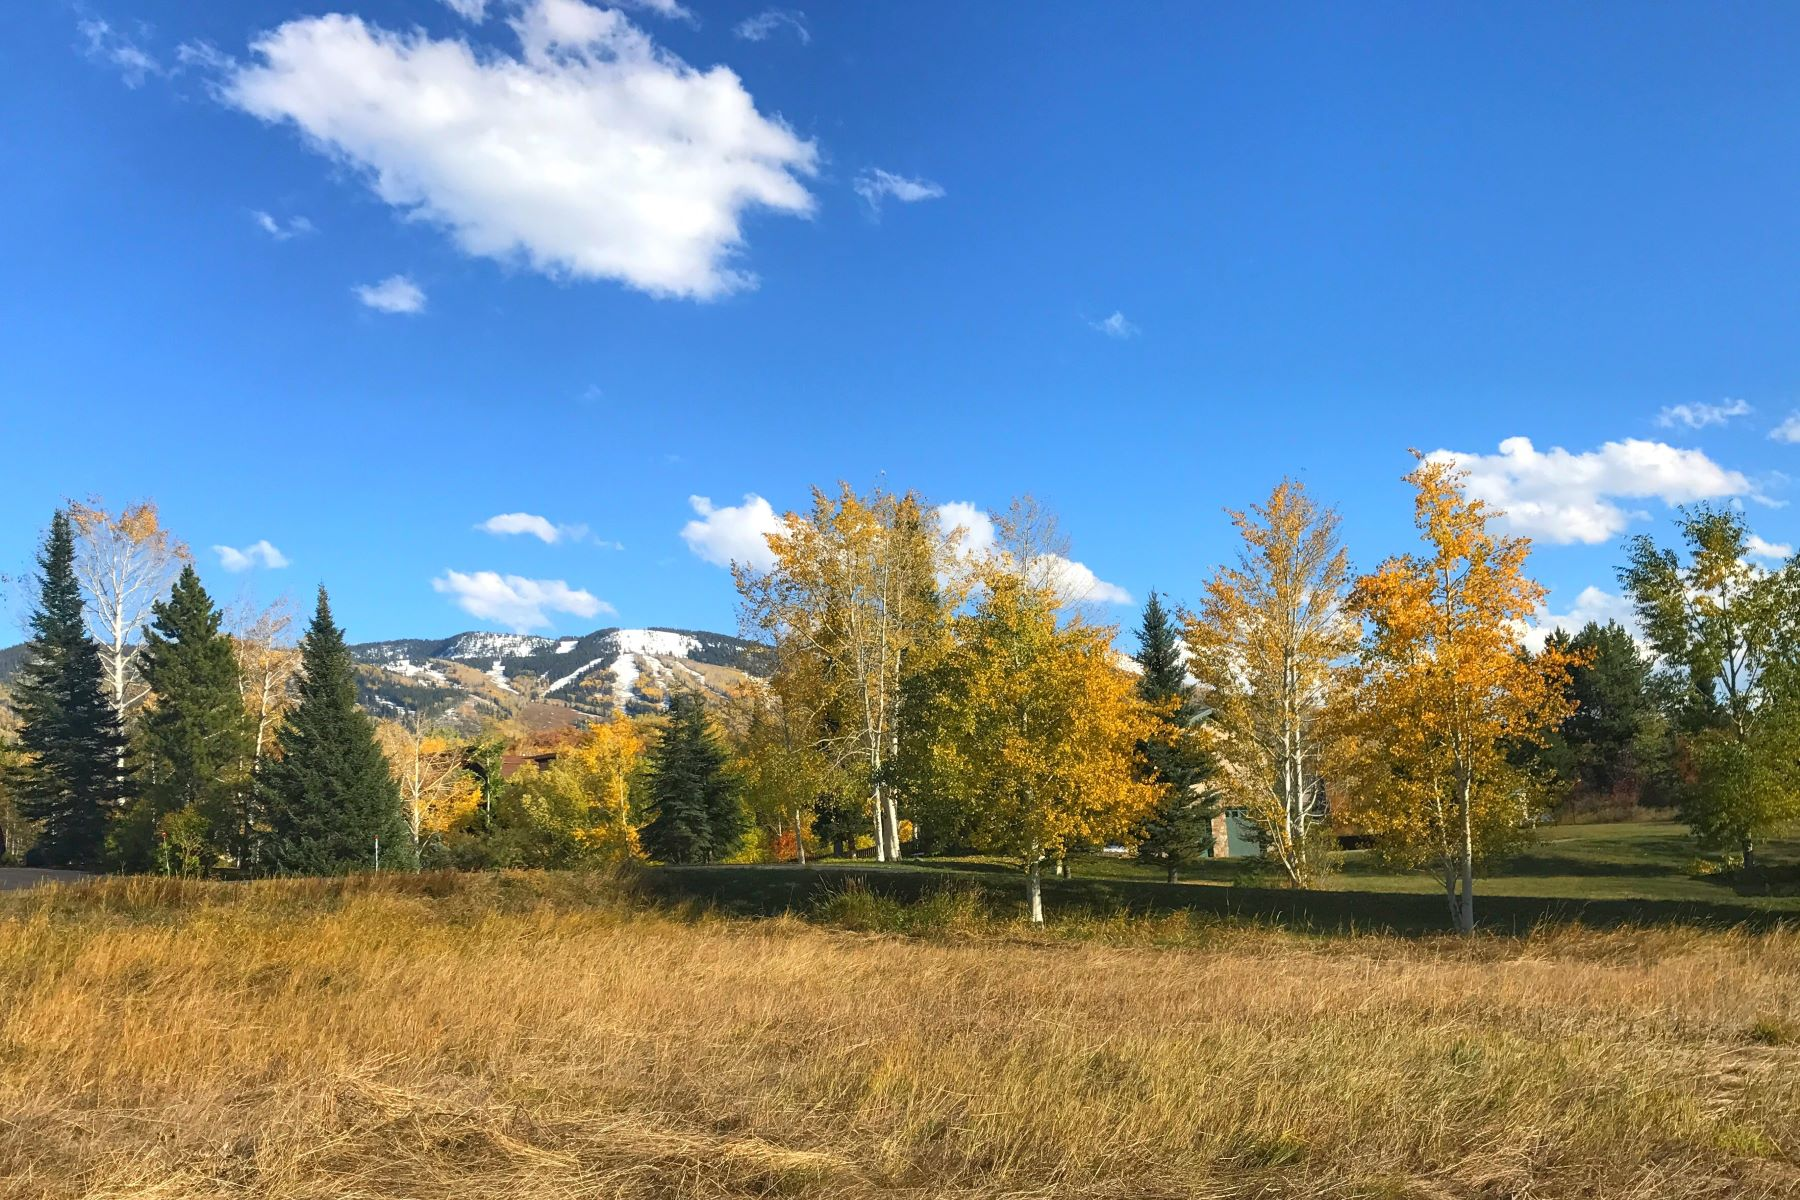 Land for Sale at Residential Lot with Ski Area Views 35 Highland Circle Steamboat Springs, Colorado 80487 United States